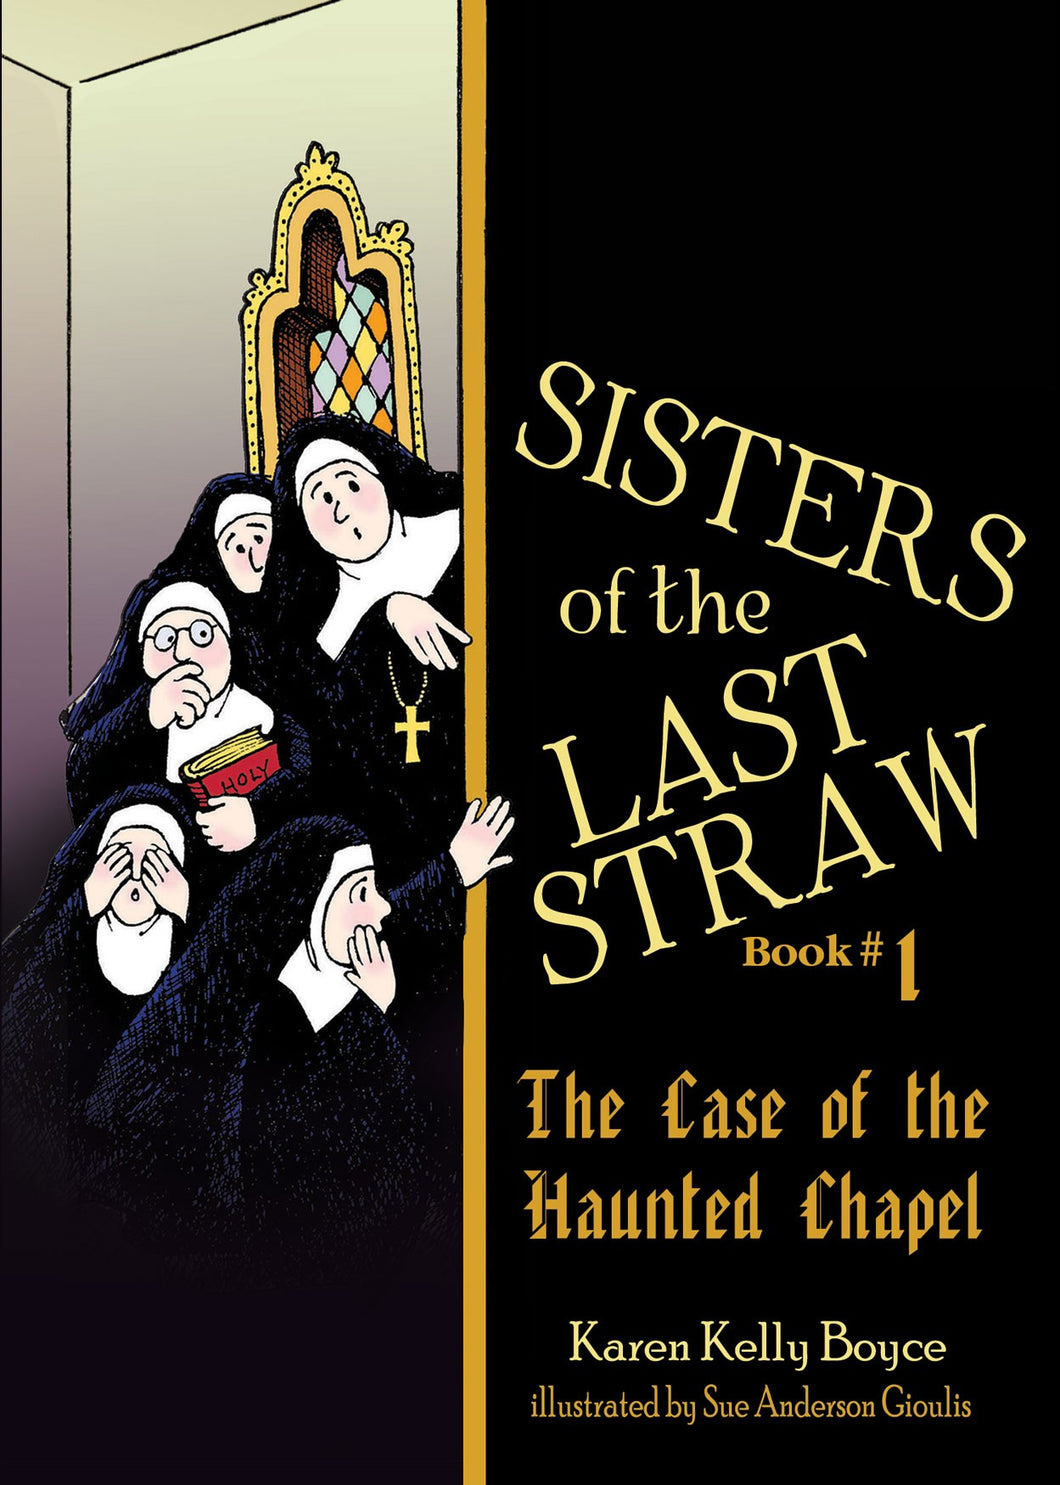 THE CASE OF THE HAUNTED CHAPEL (BOOK 1) - SISTERS OF THE LAST STRAW